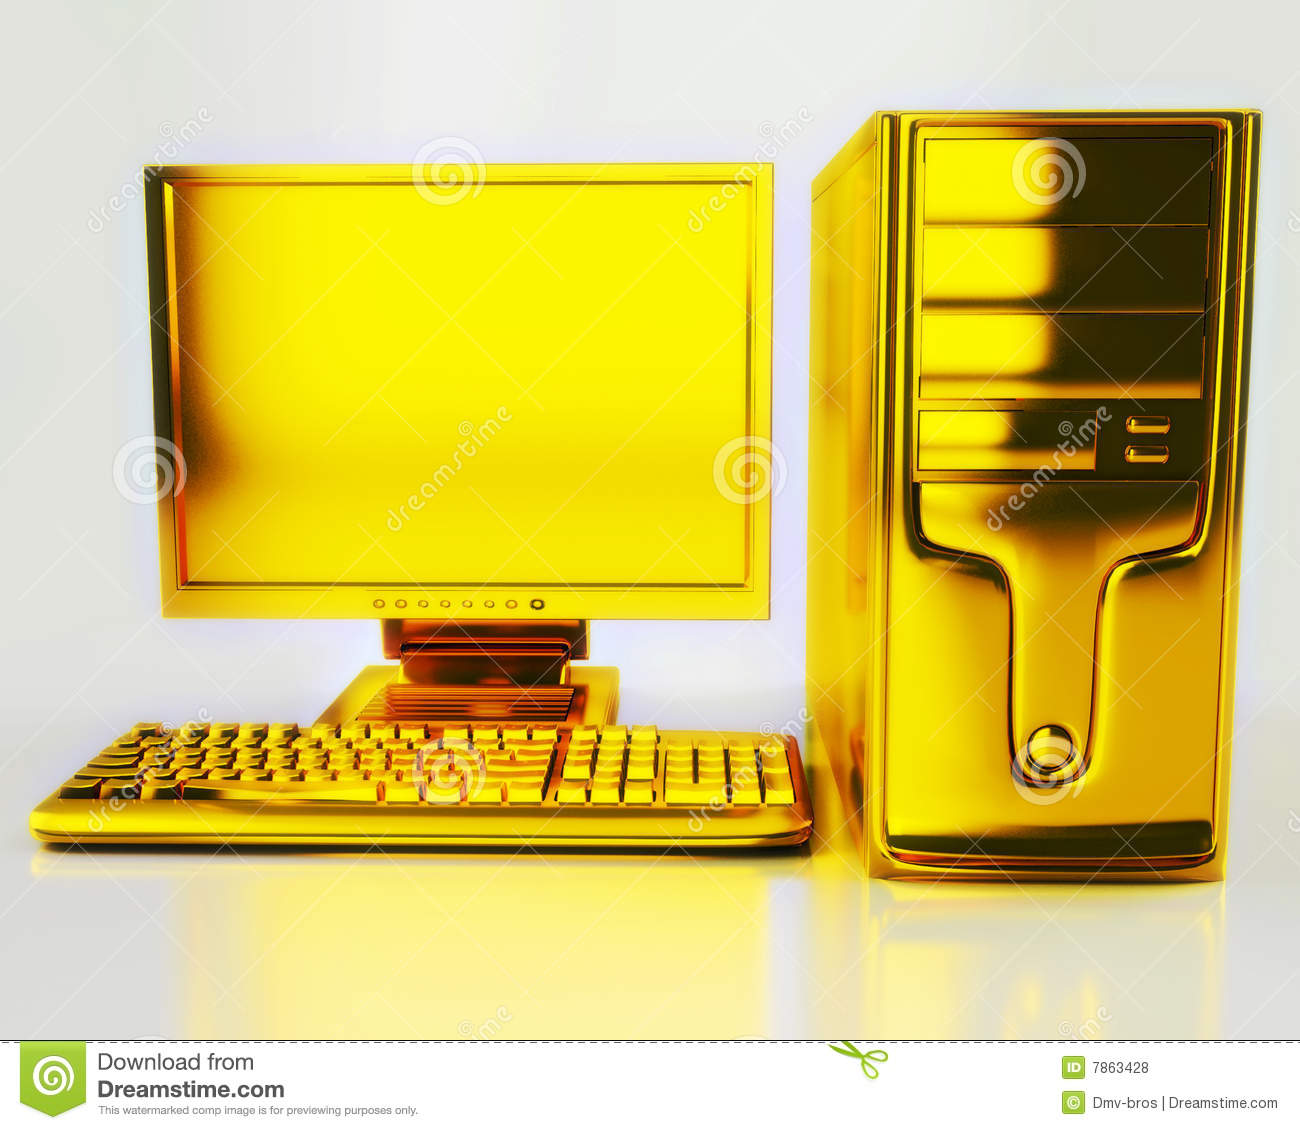 How Do Computers Affect Our Work?